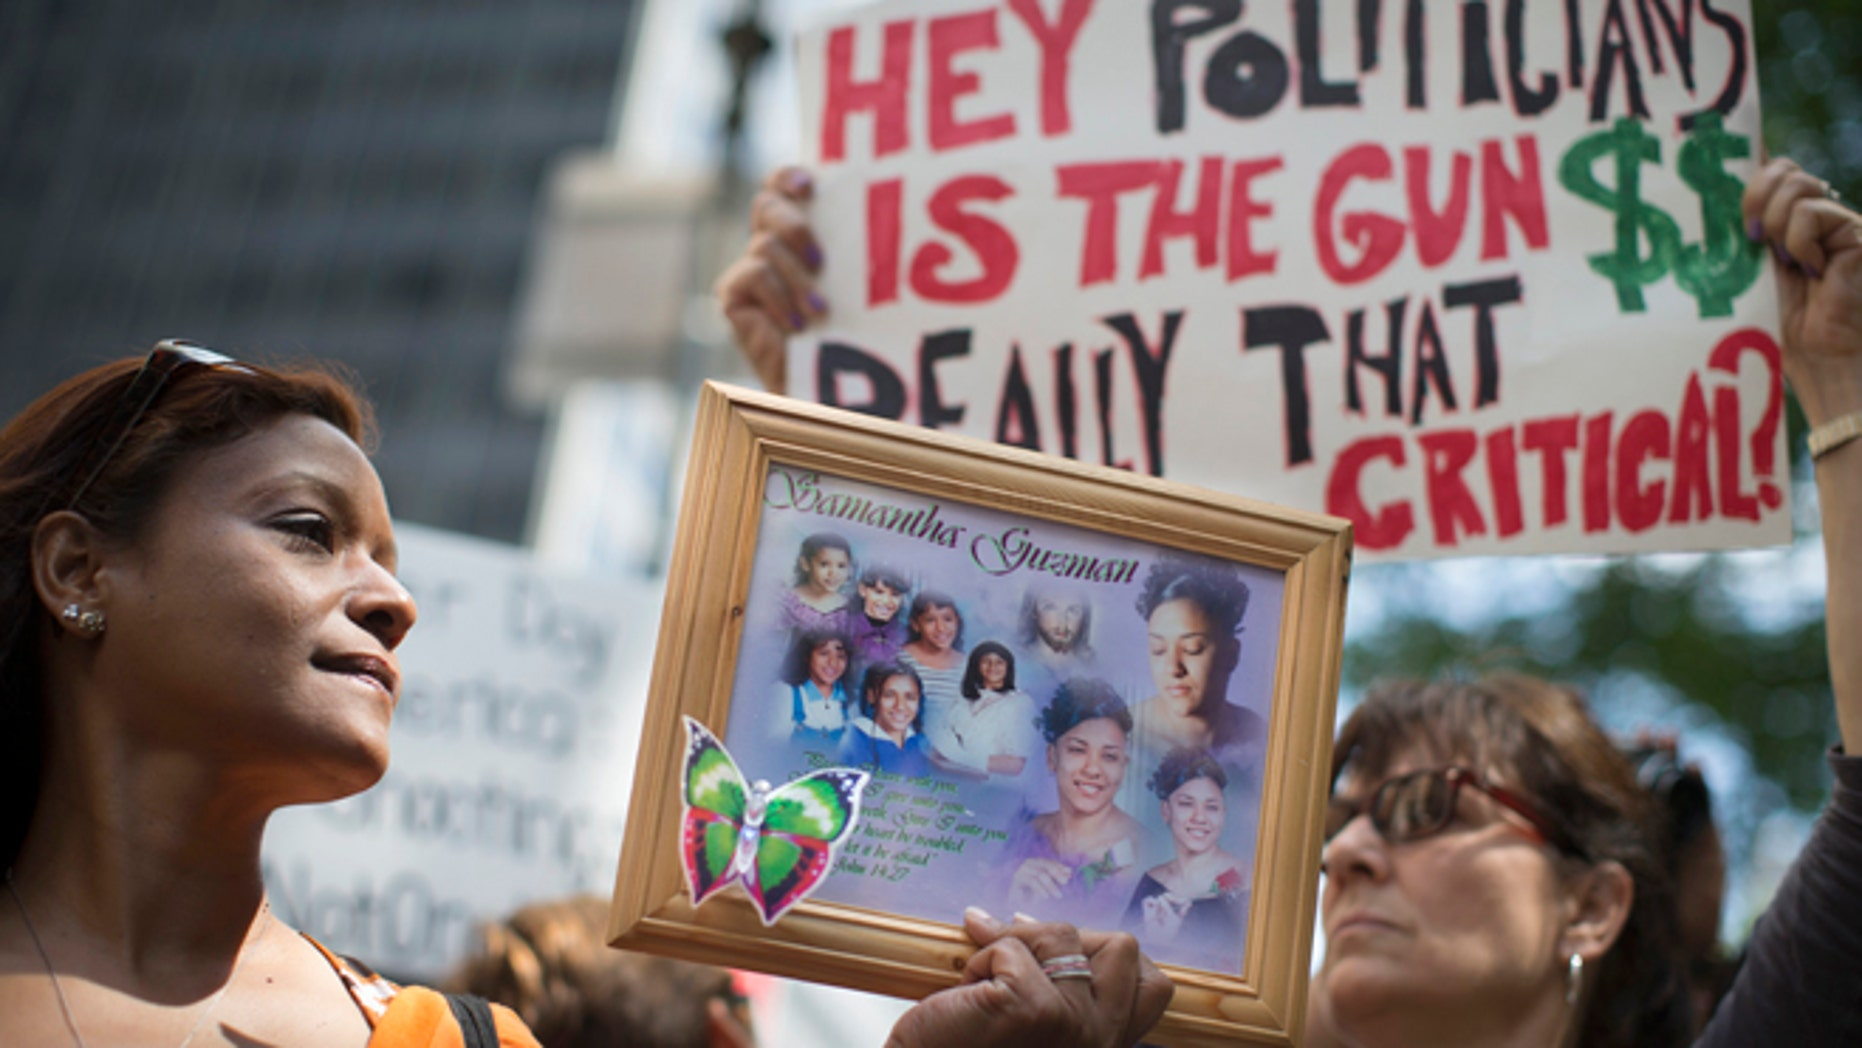 FILE: June 14, 2014: Diana Rodriguez with a picture of her daughter, a victim of gun violence, at a rally outside city hall in New York City.